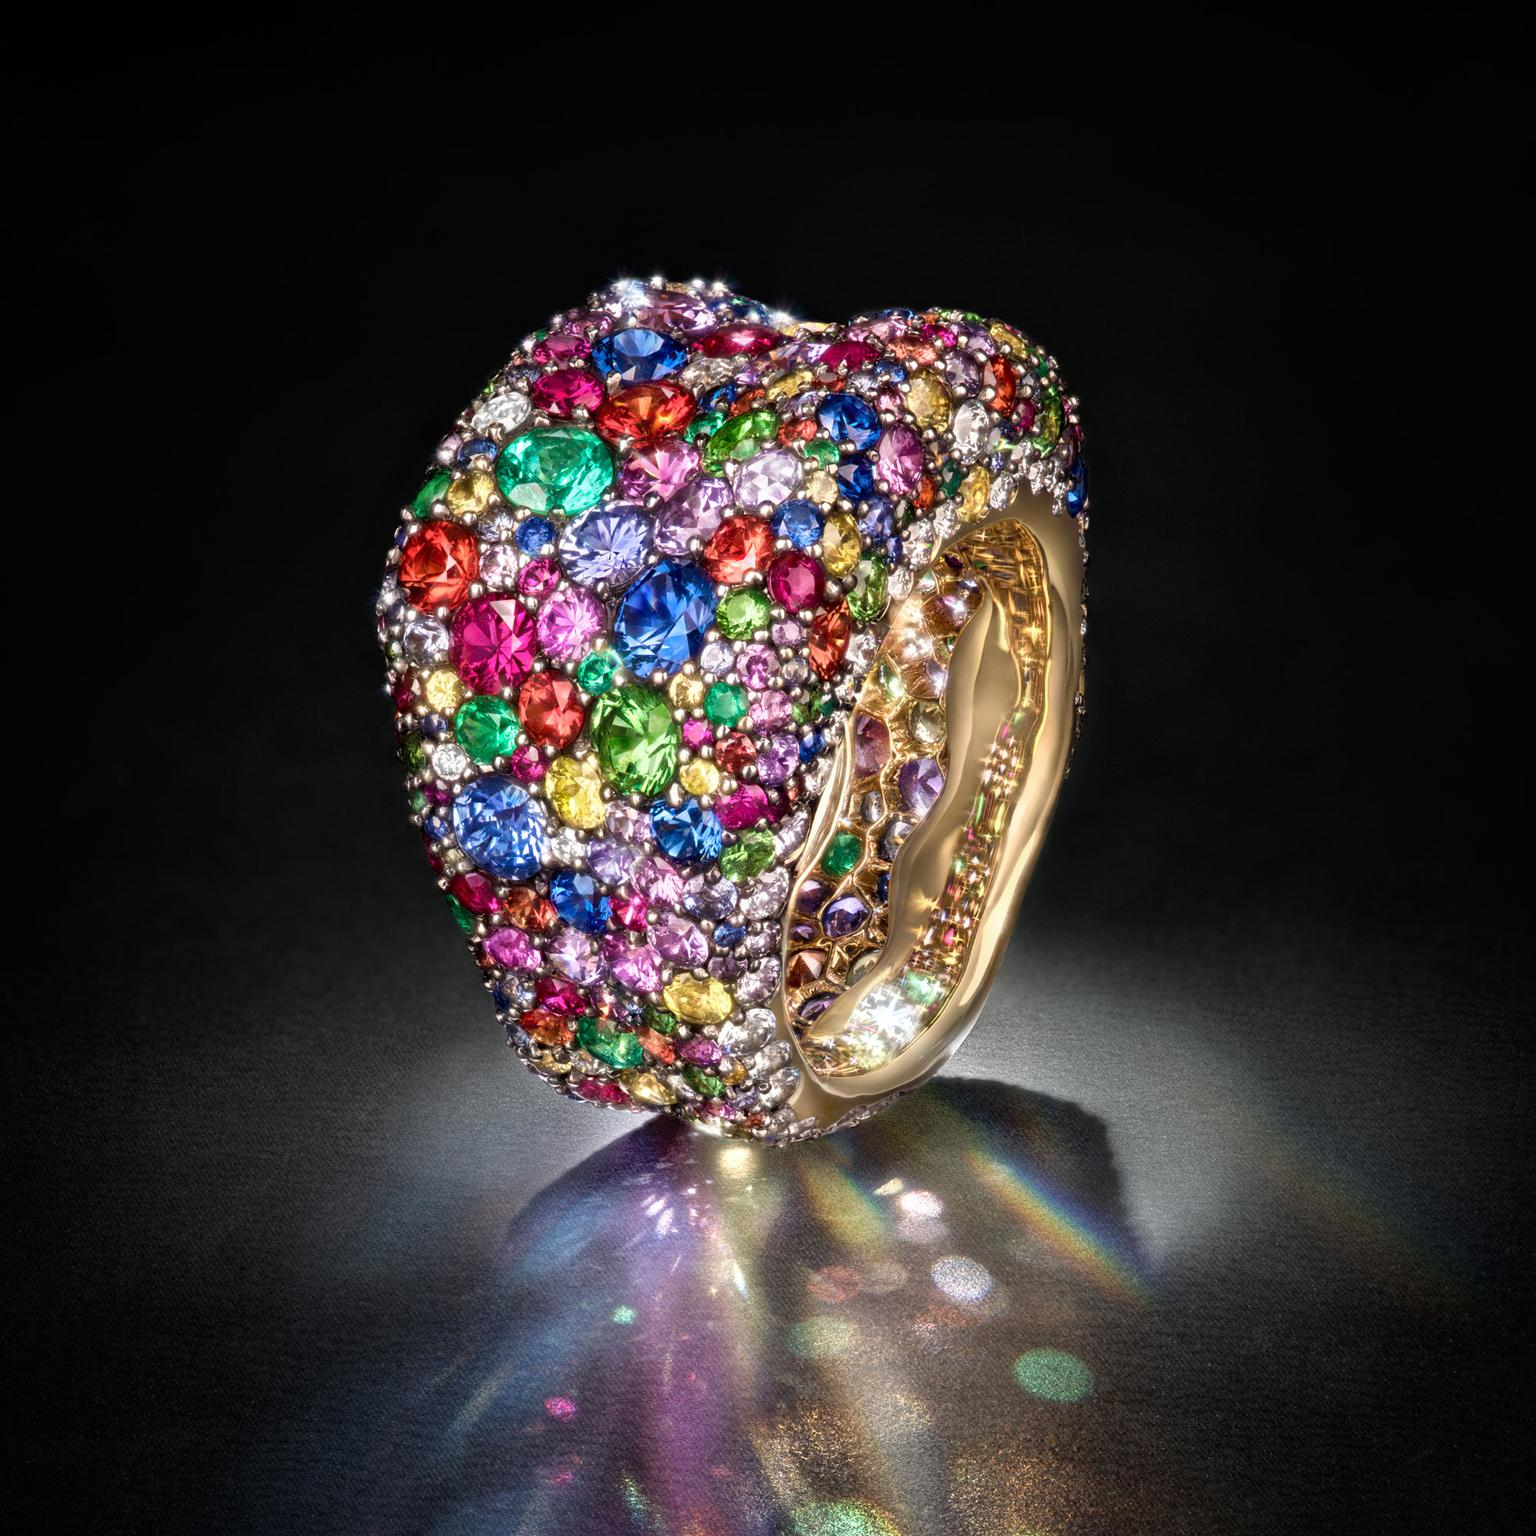 Fabergé 2015 Emotion ring